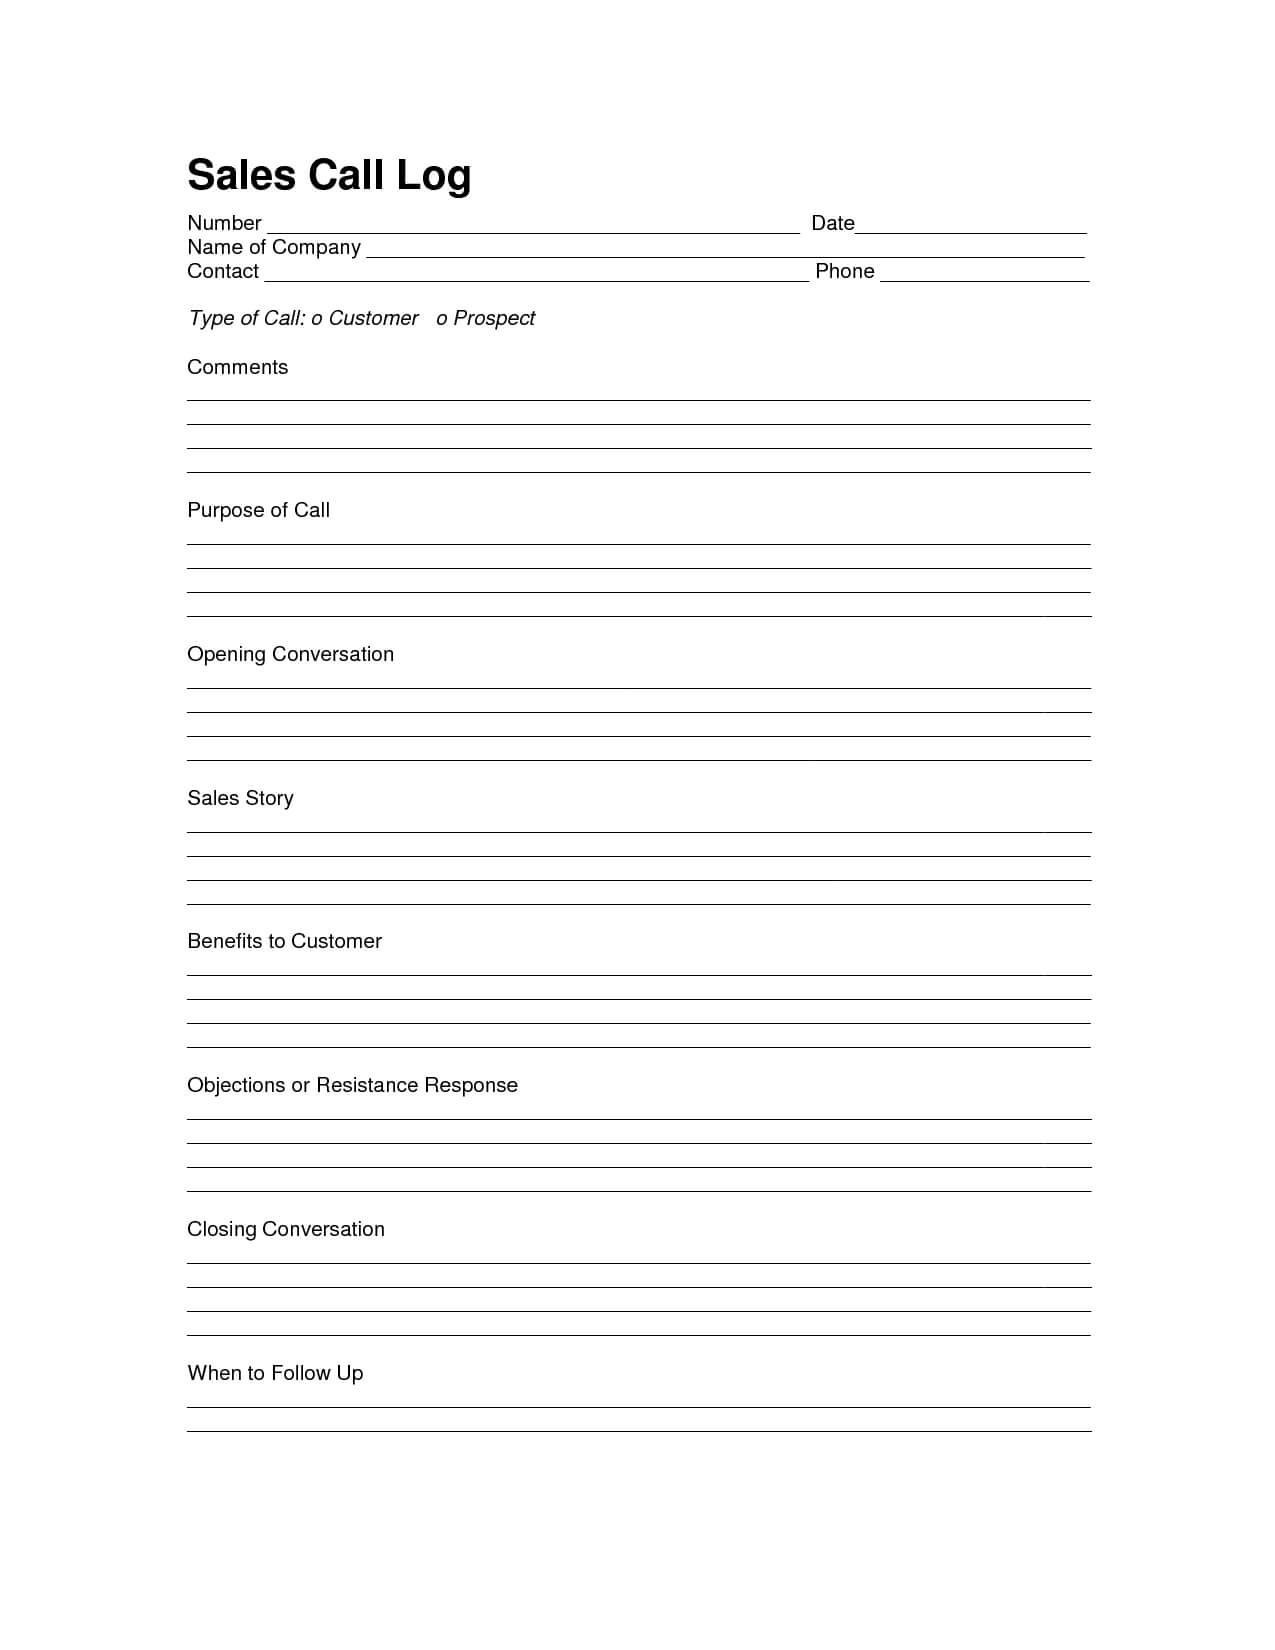 Sales Log Sheet Template   Sales Call Log Template   Sales Throughout Coaches Report Template